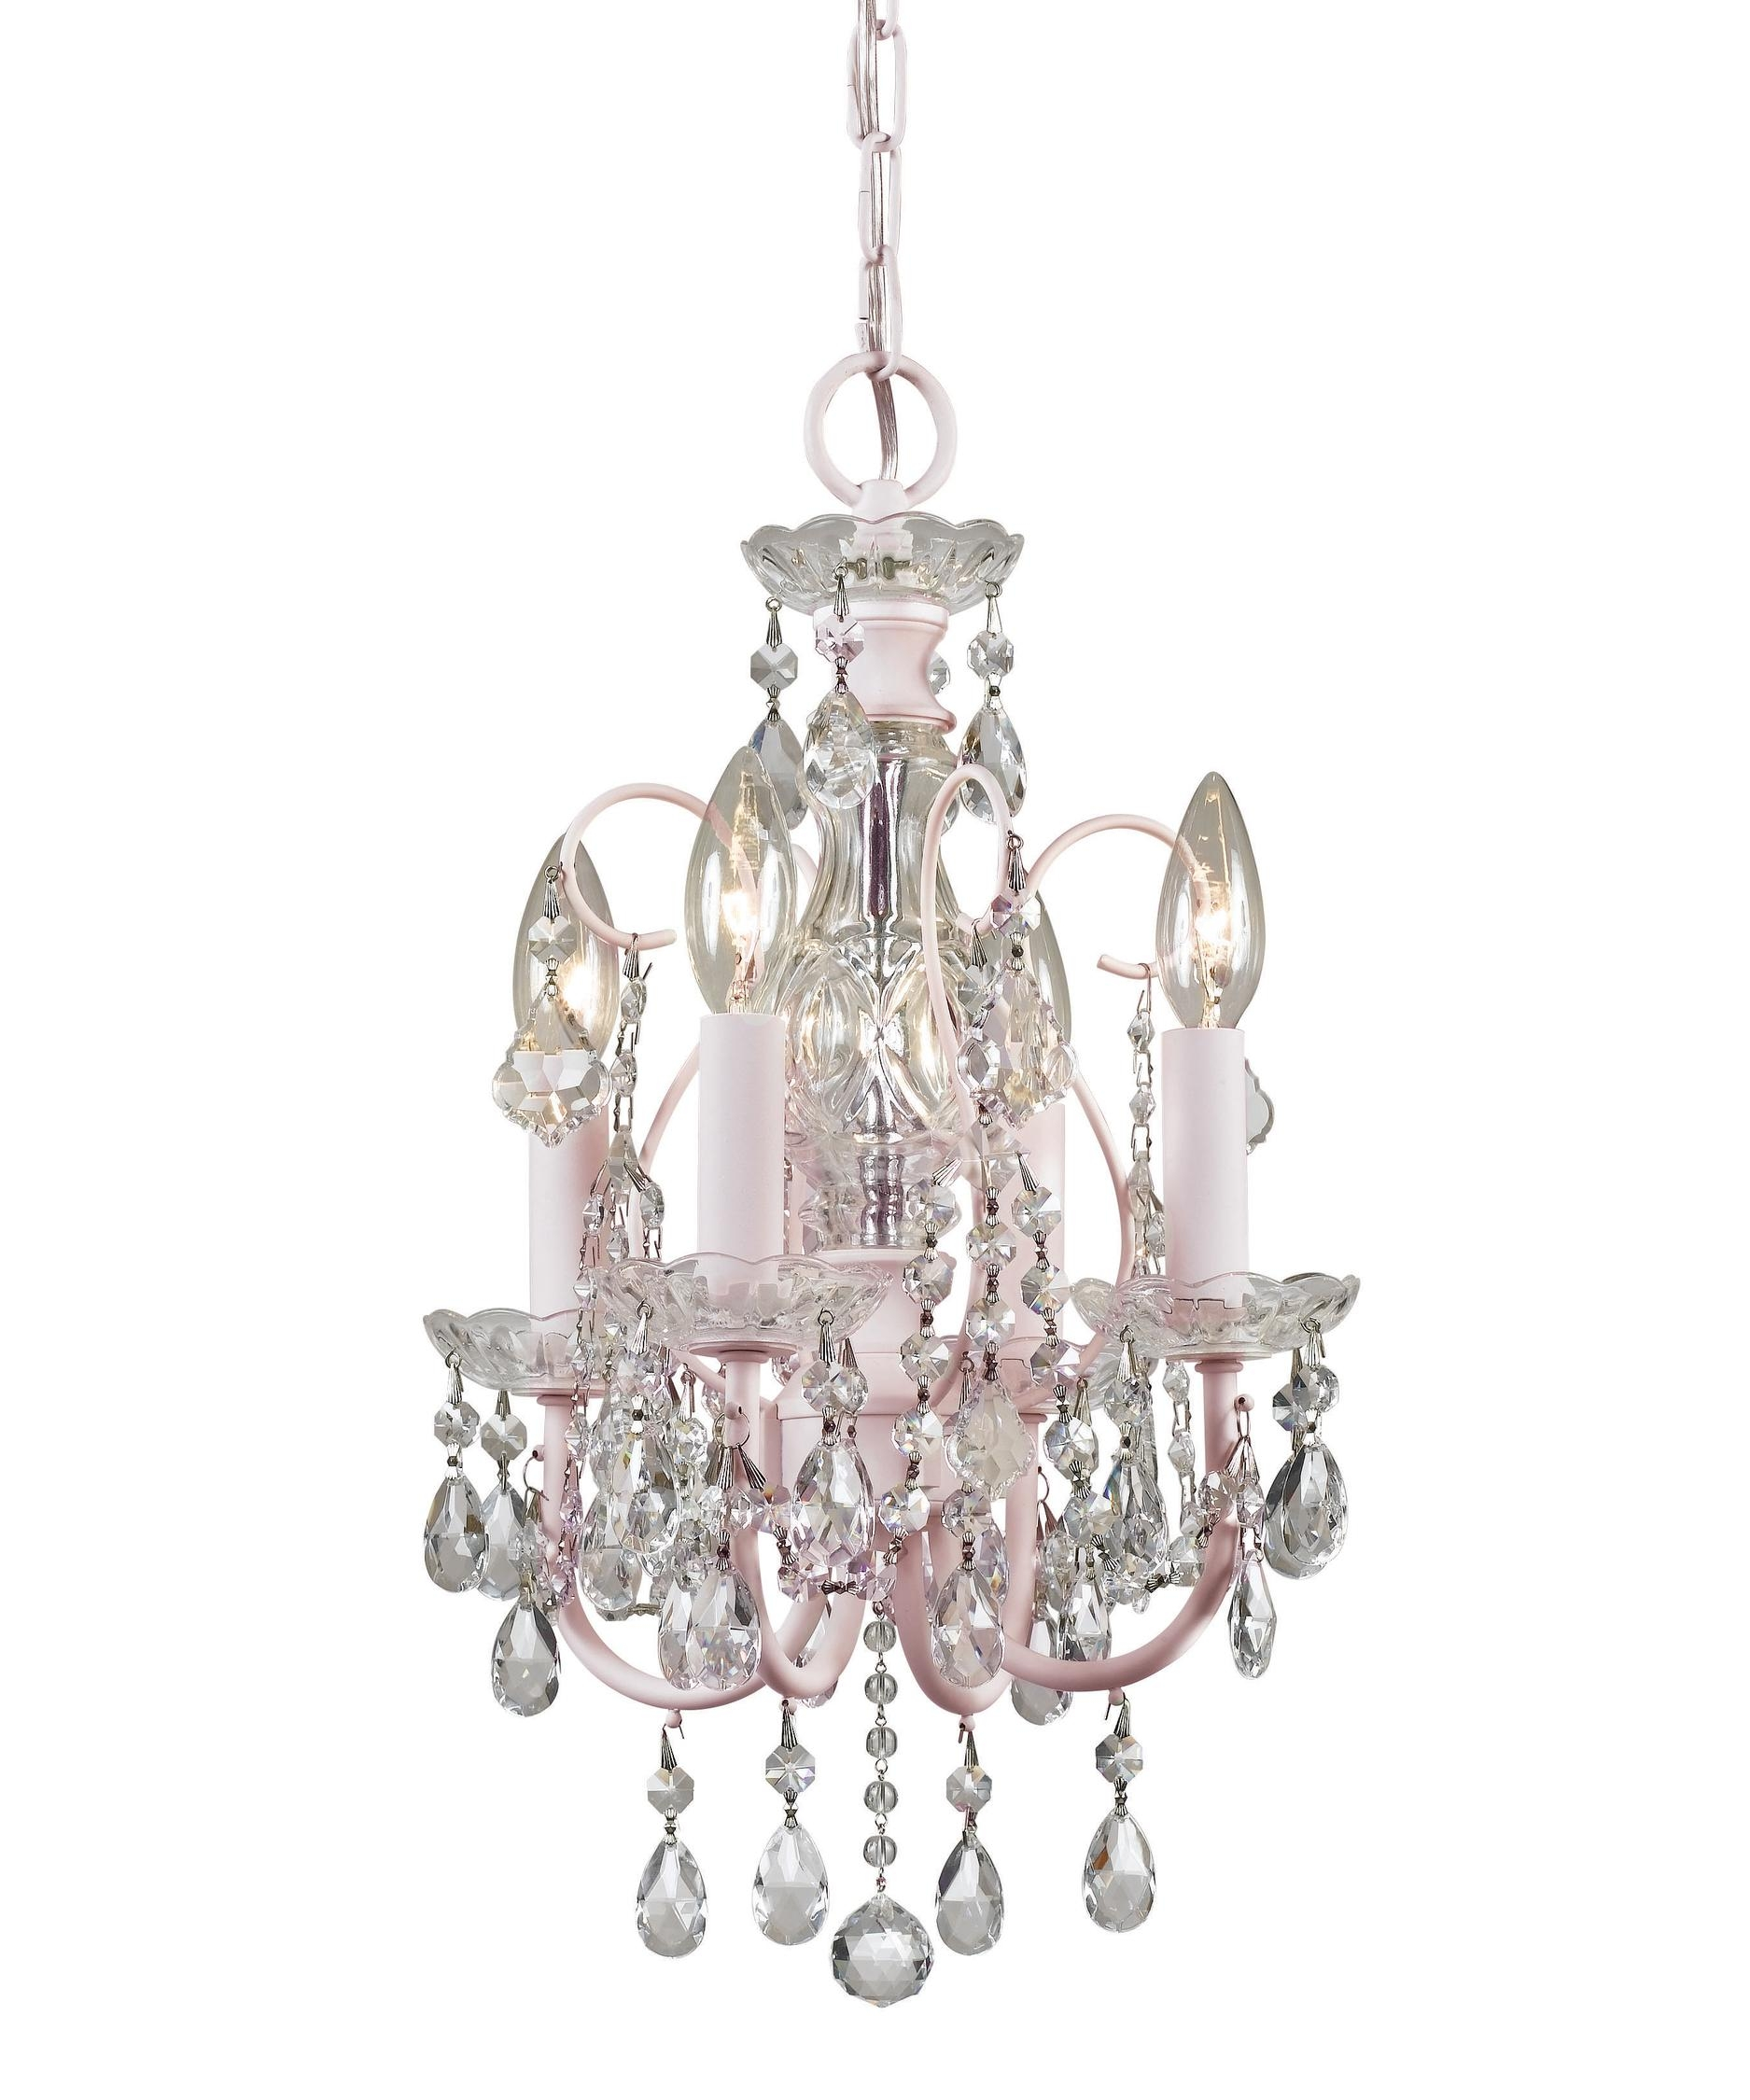 Crystorama 3224 Imperial 14 Inch Wide 4 Light Mini Chandelier In Mini Chandelier Bathroom Lighting (View 15 of 25)